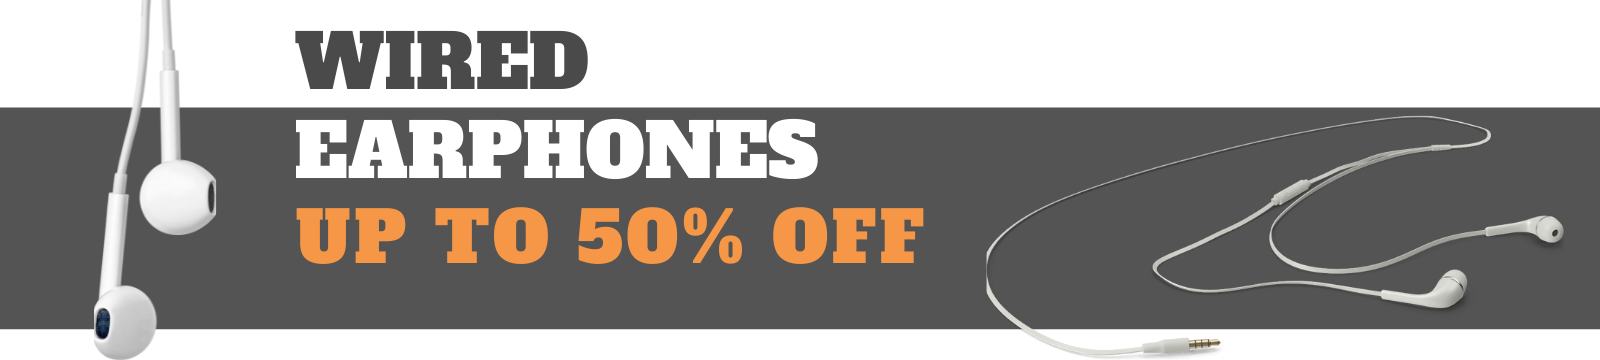 Wired-Earphones-Sale-And-Offers-diamu